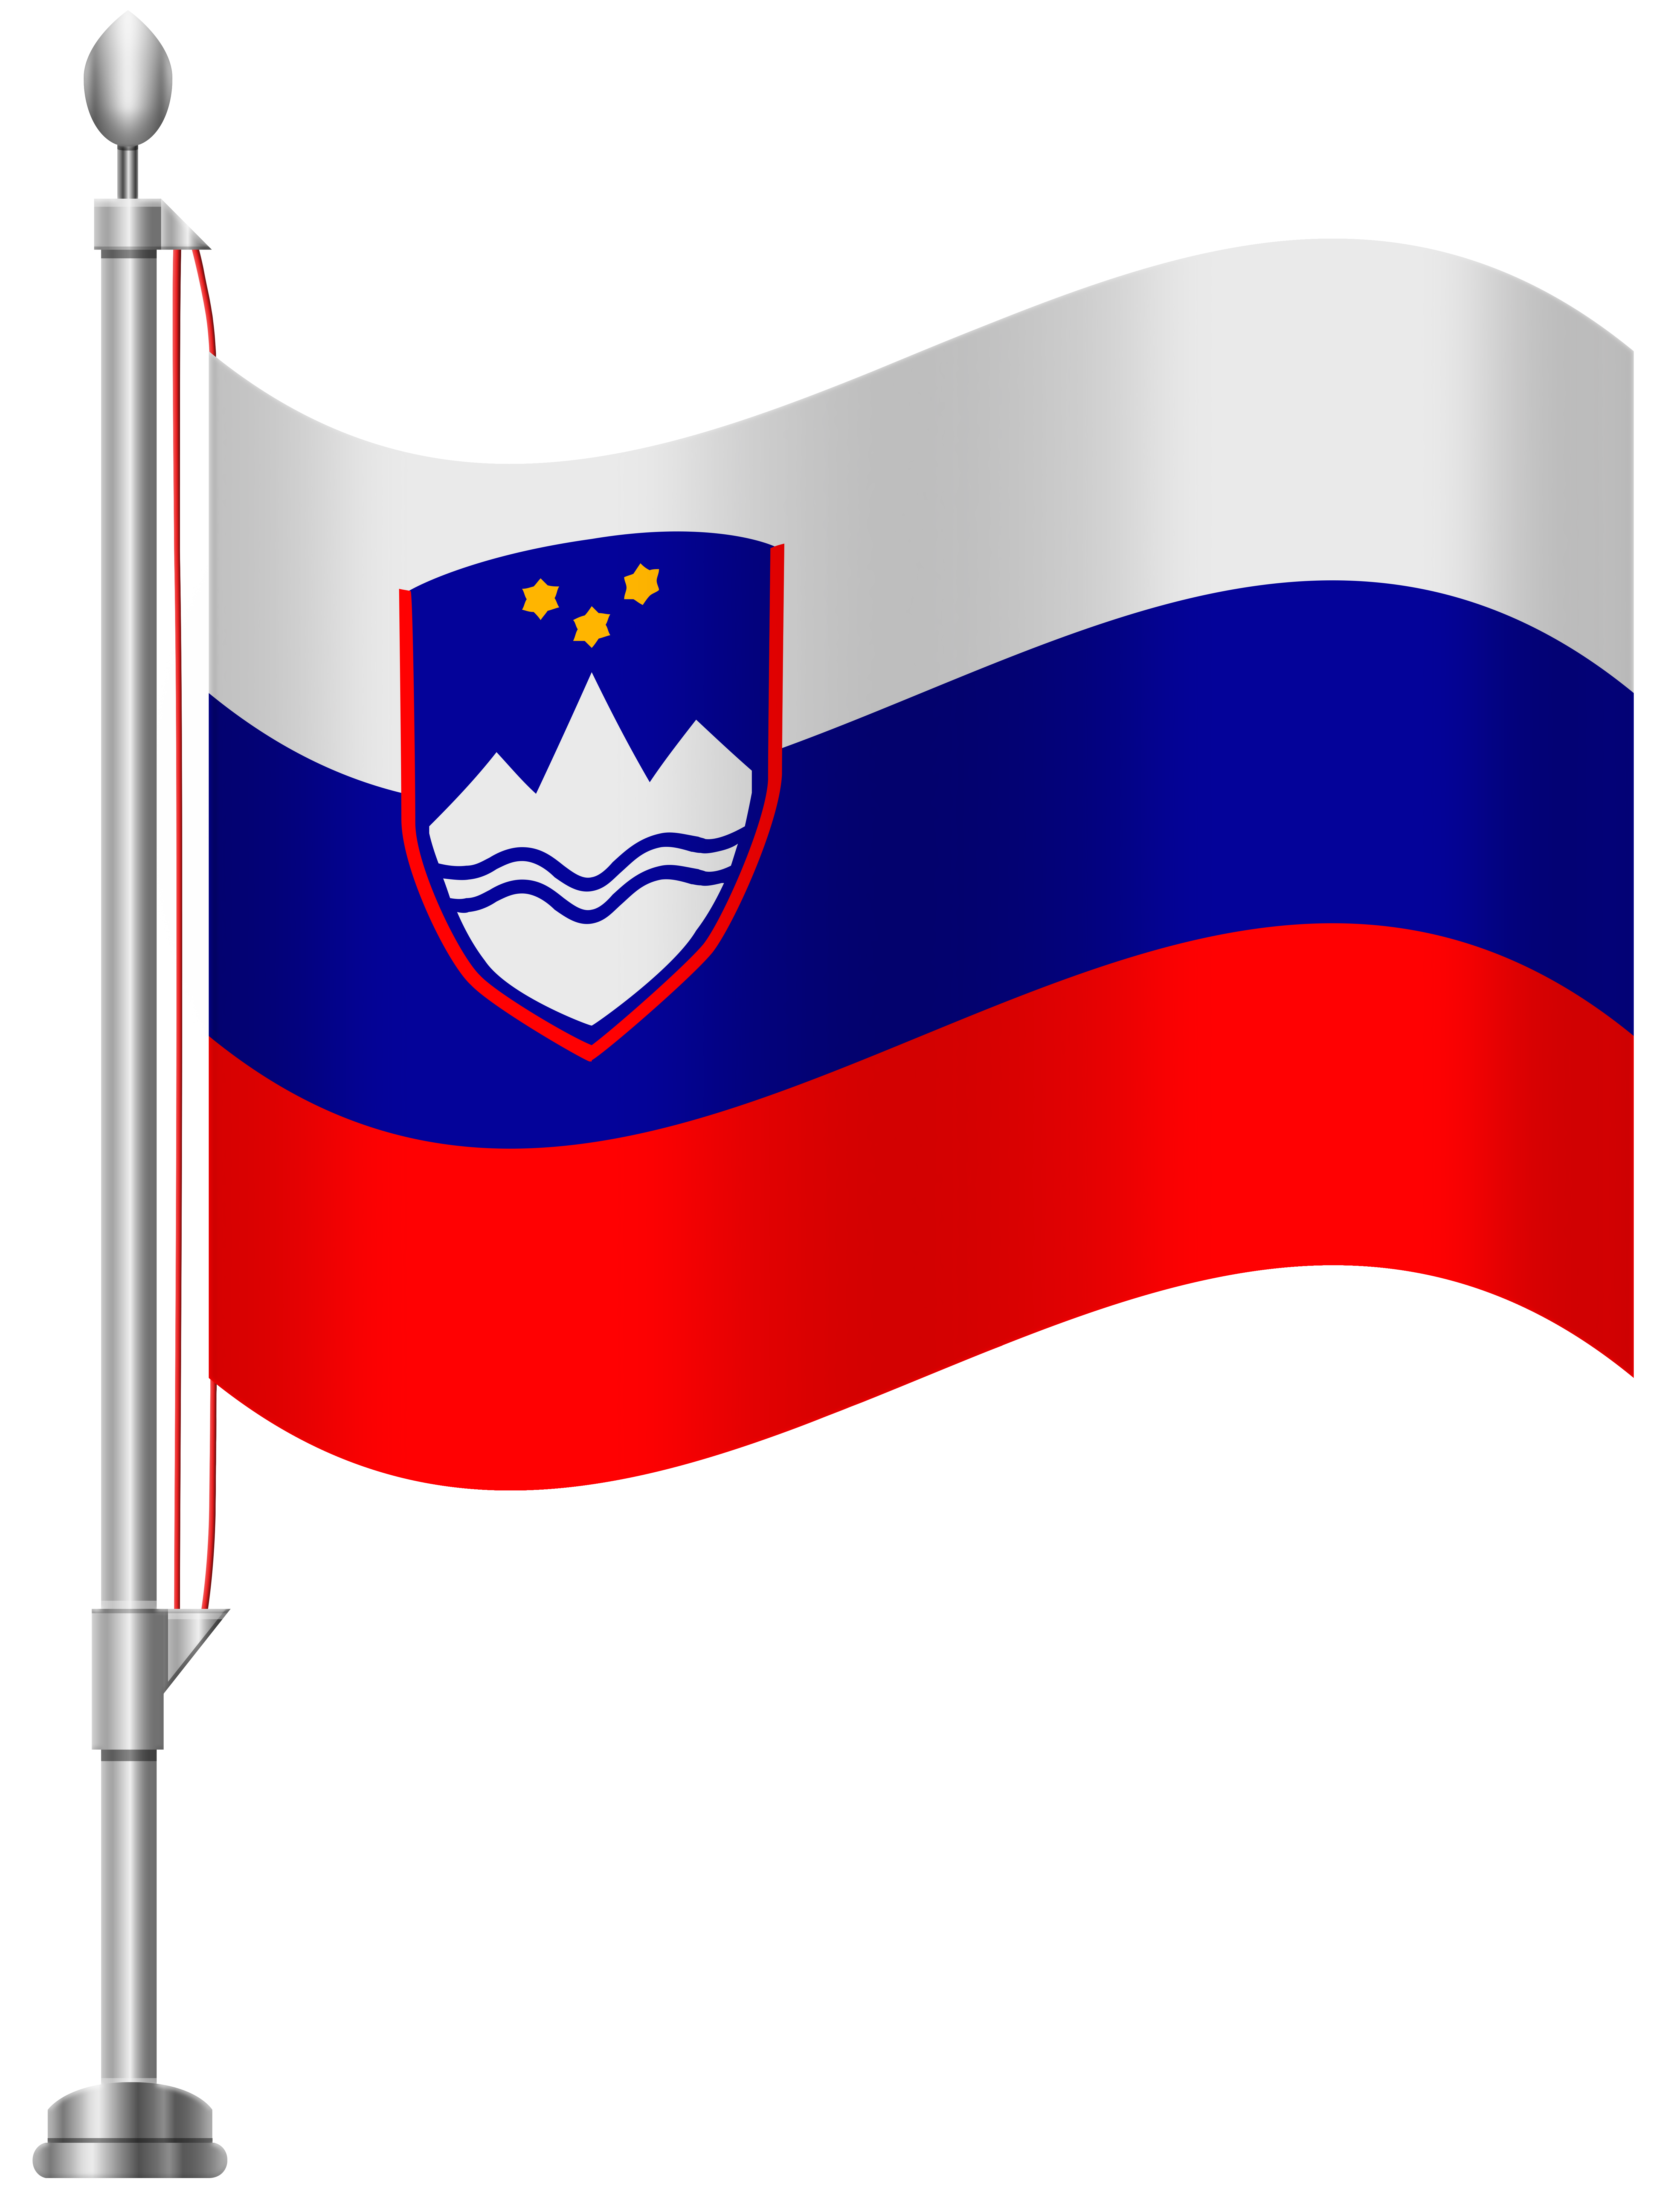 Slovenia clipart #2, Download drawings